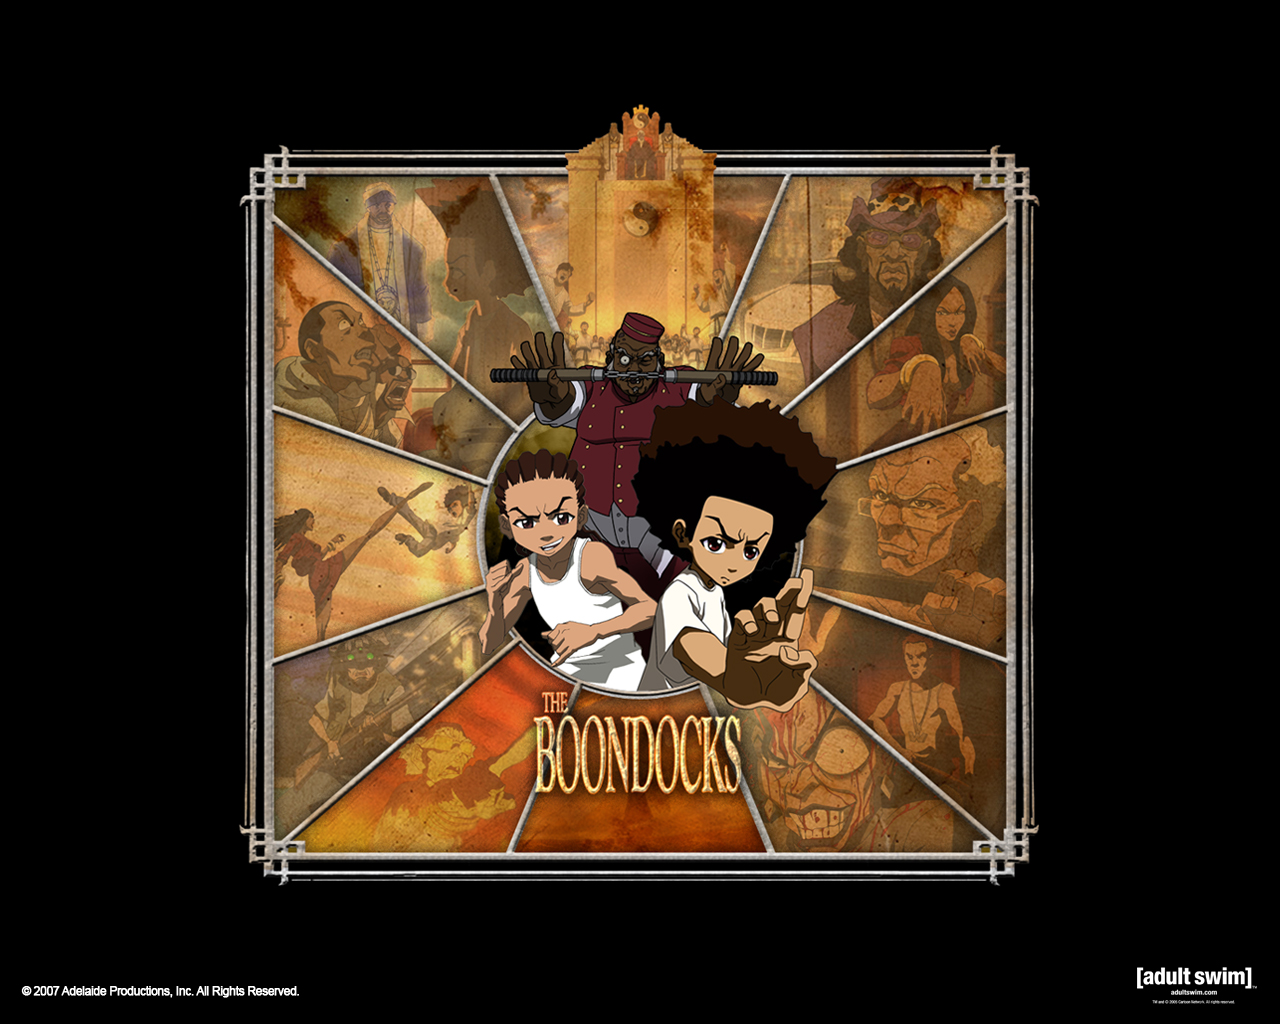 The Boondocks Desktop Wallpapers for HD Widescreen and Mobile 1280x1024